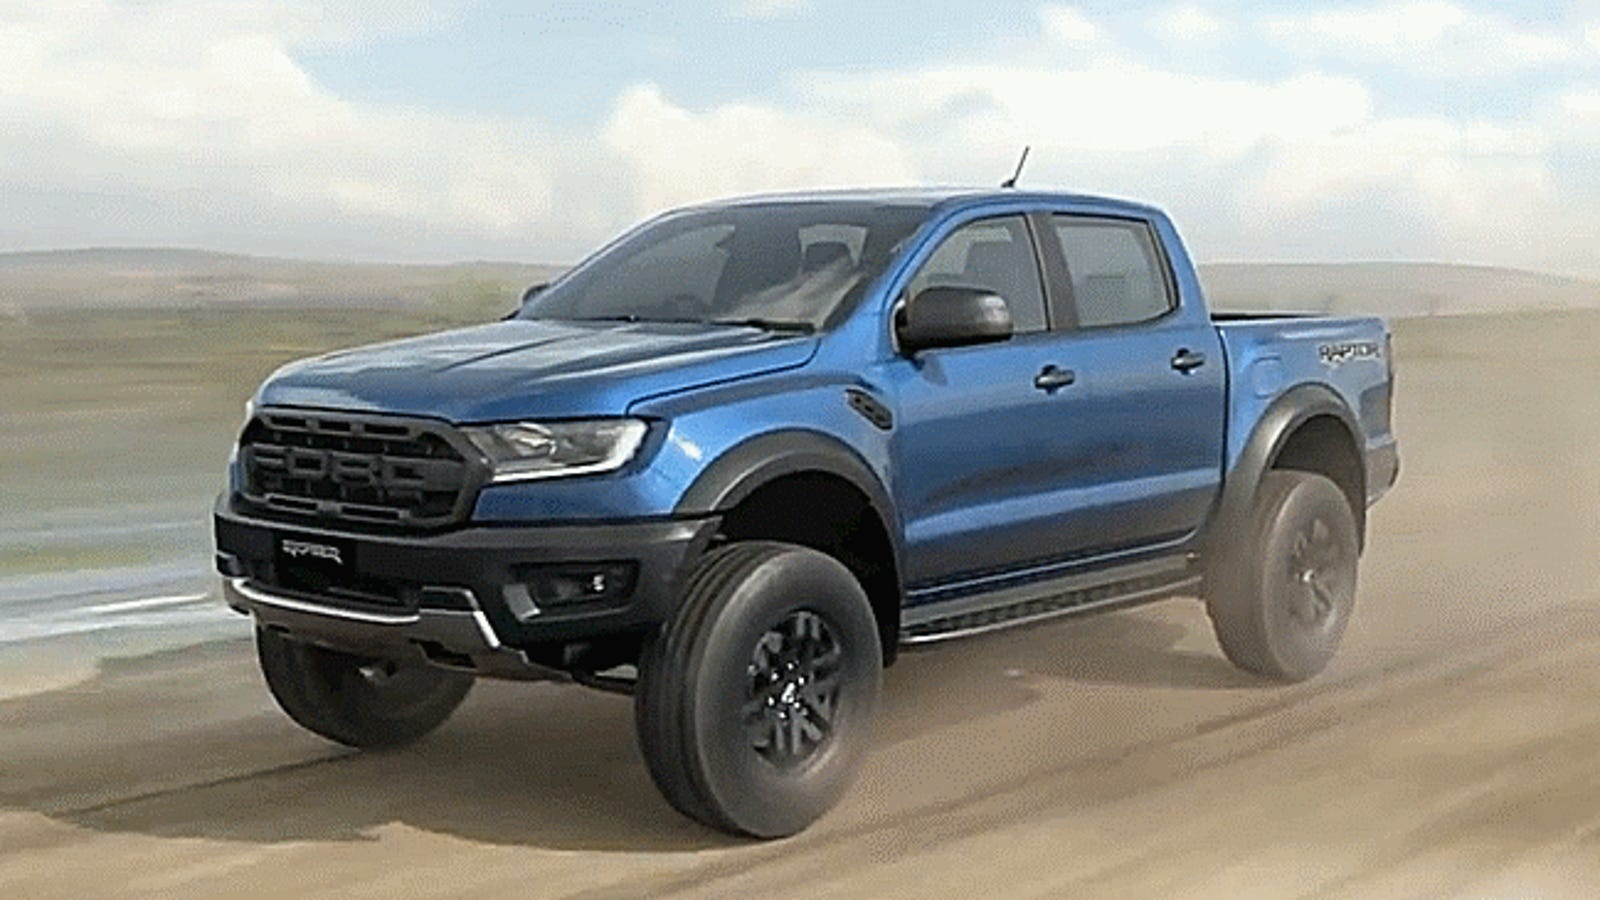 Ford Raptor Inside >> See Inside The 2019 Ford Ranger Raptor With This Cool Cutaway